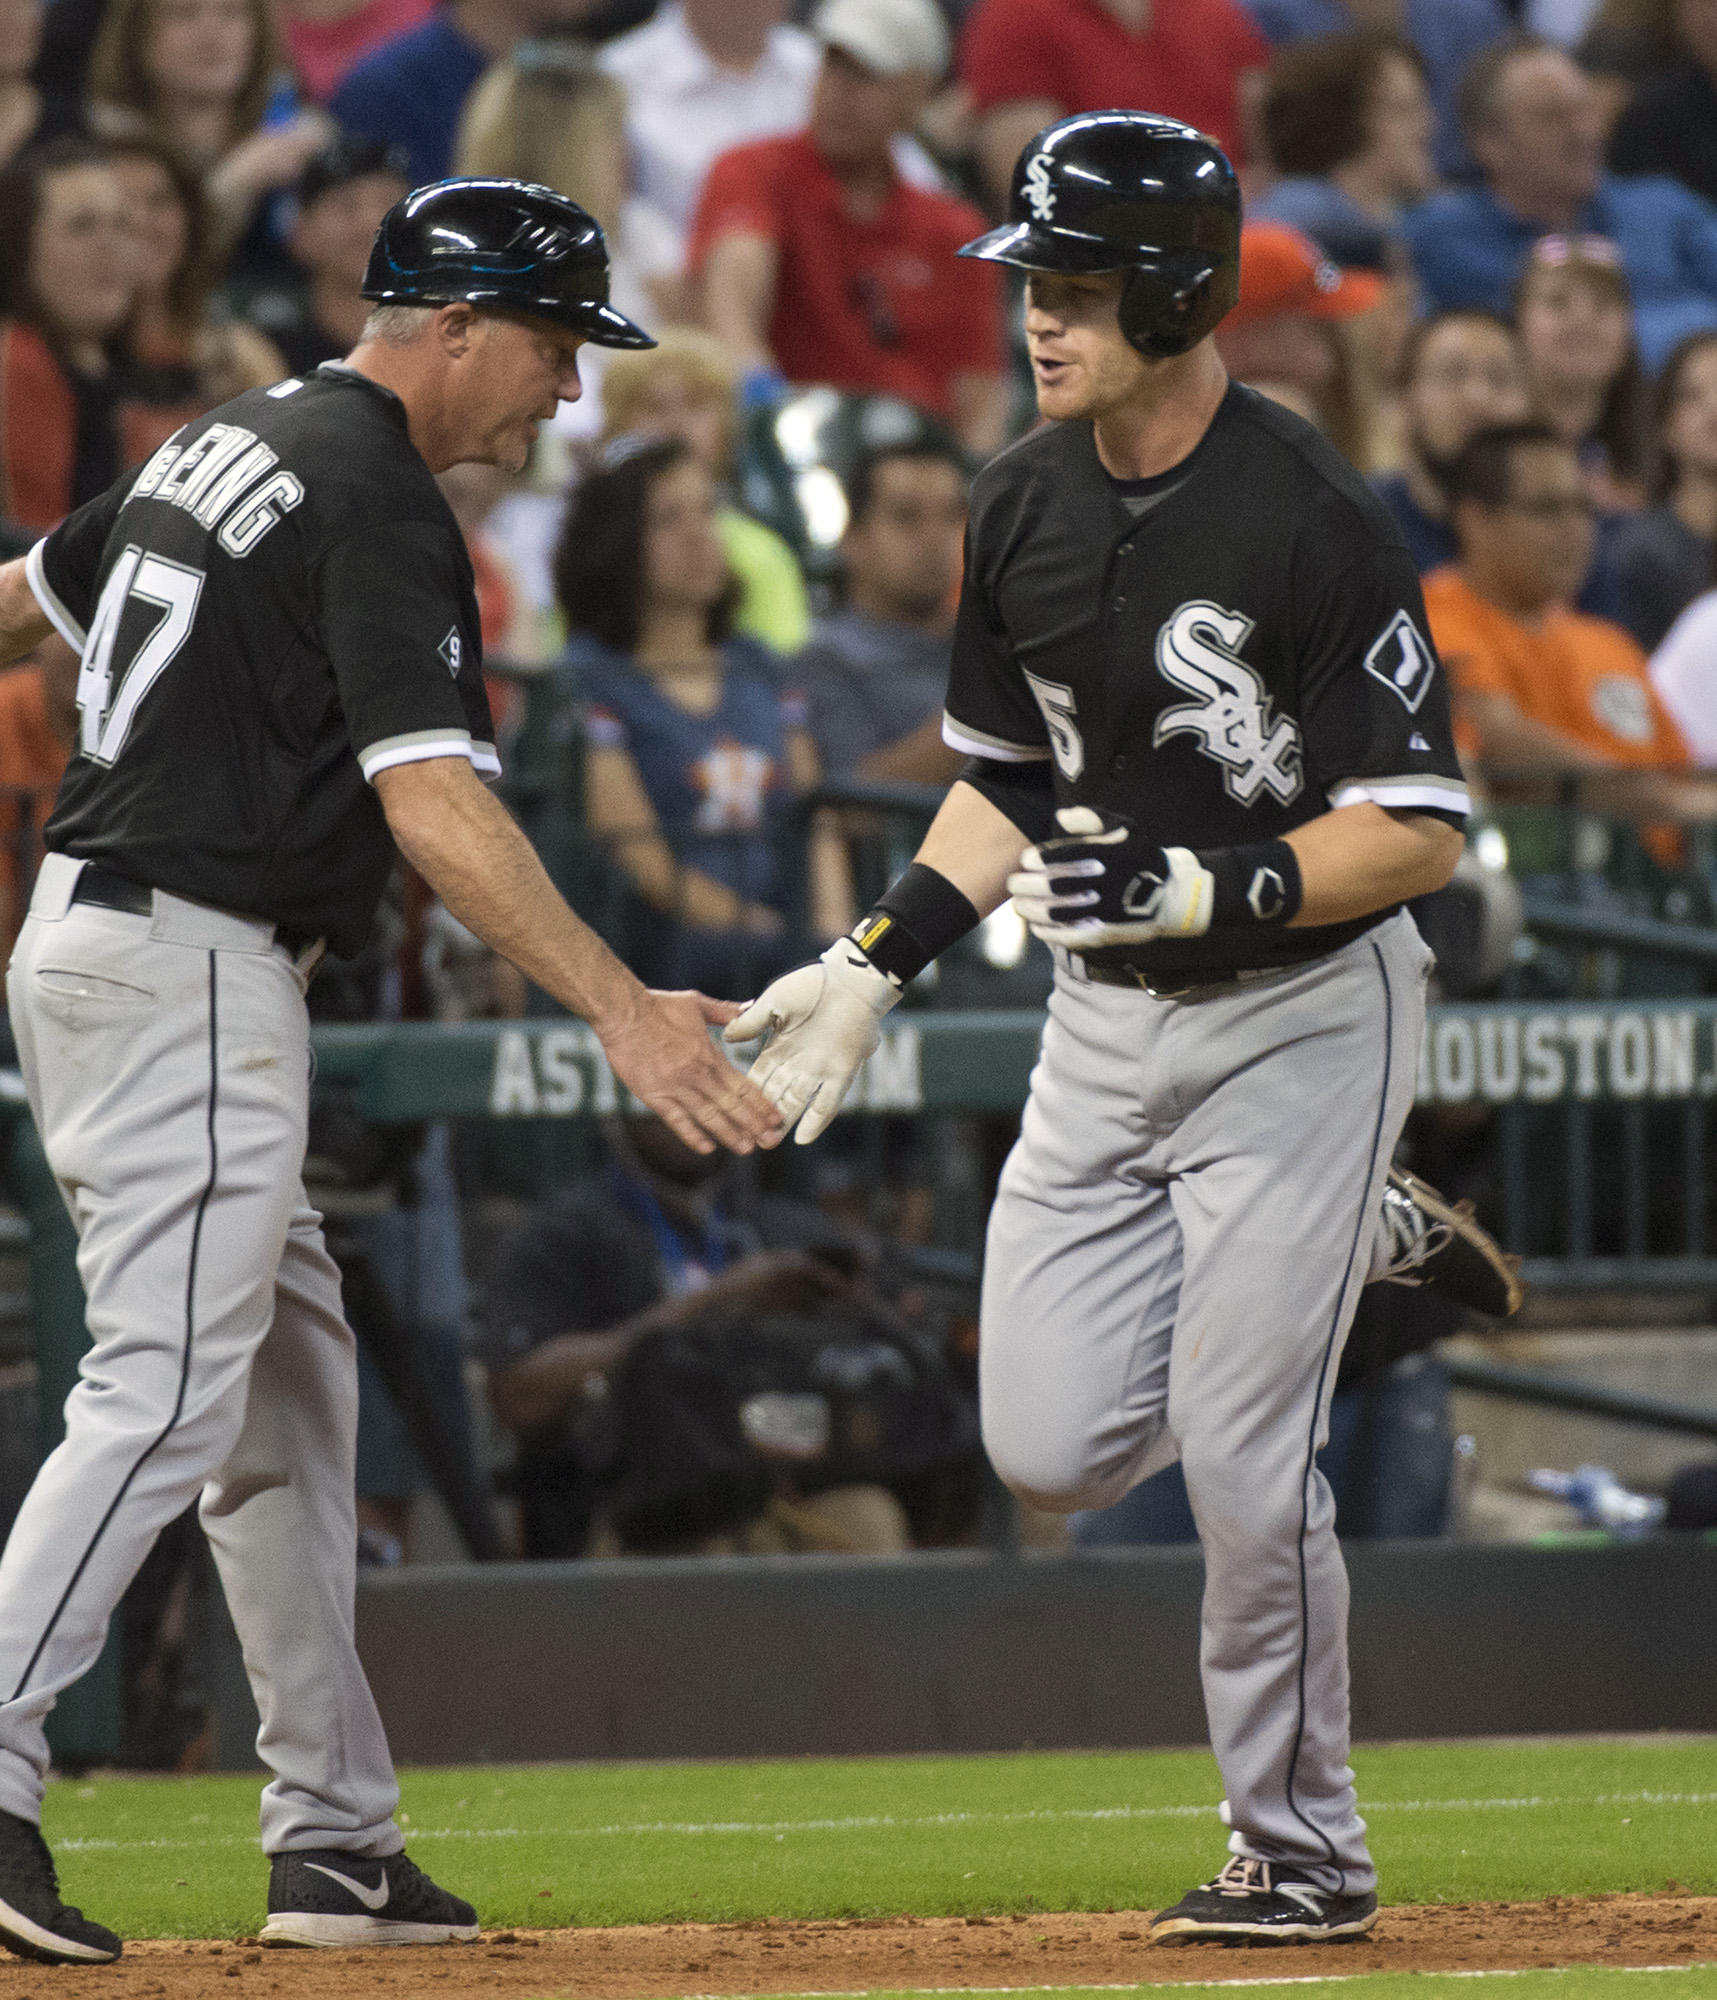 Chicago White Sox's Gordon Beckham (15) is congratulated by third base coach Joe McEwing after hitting a solo home run against the Houston Astros during the eighth inning of a baseball game Friday, May 29, 2015, in Houston. (AP Photo/George Bridges)